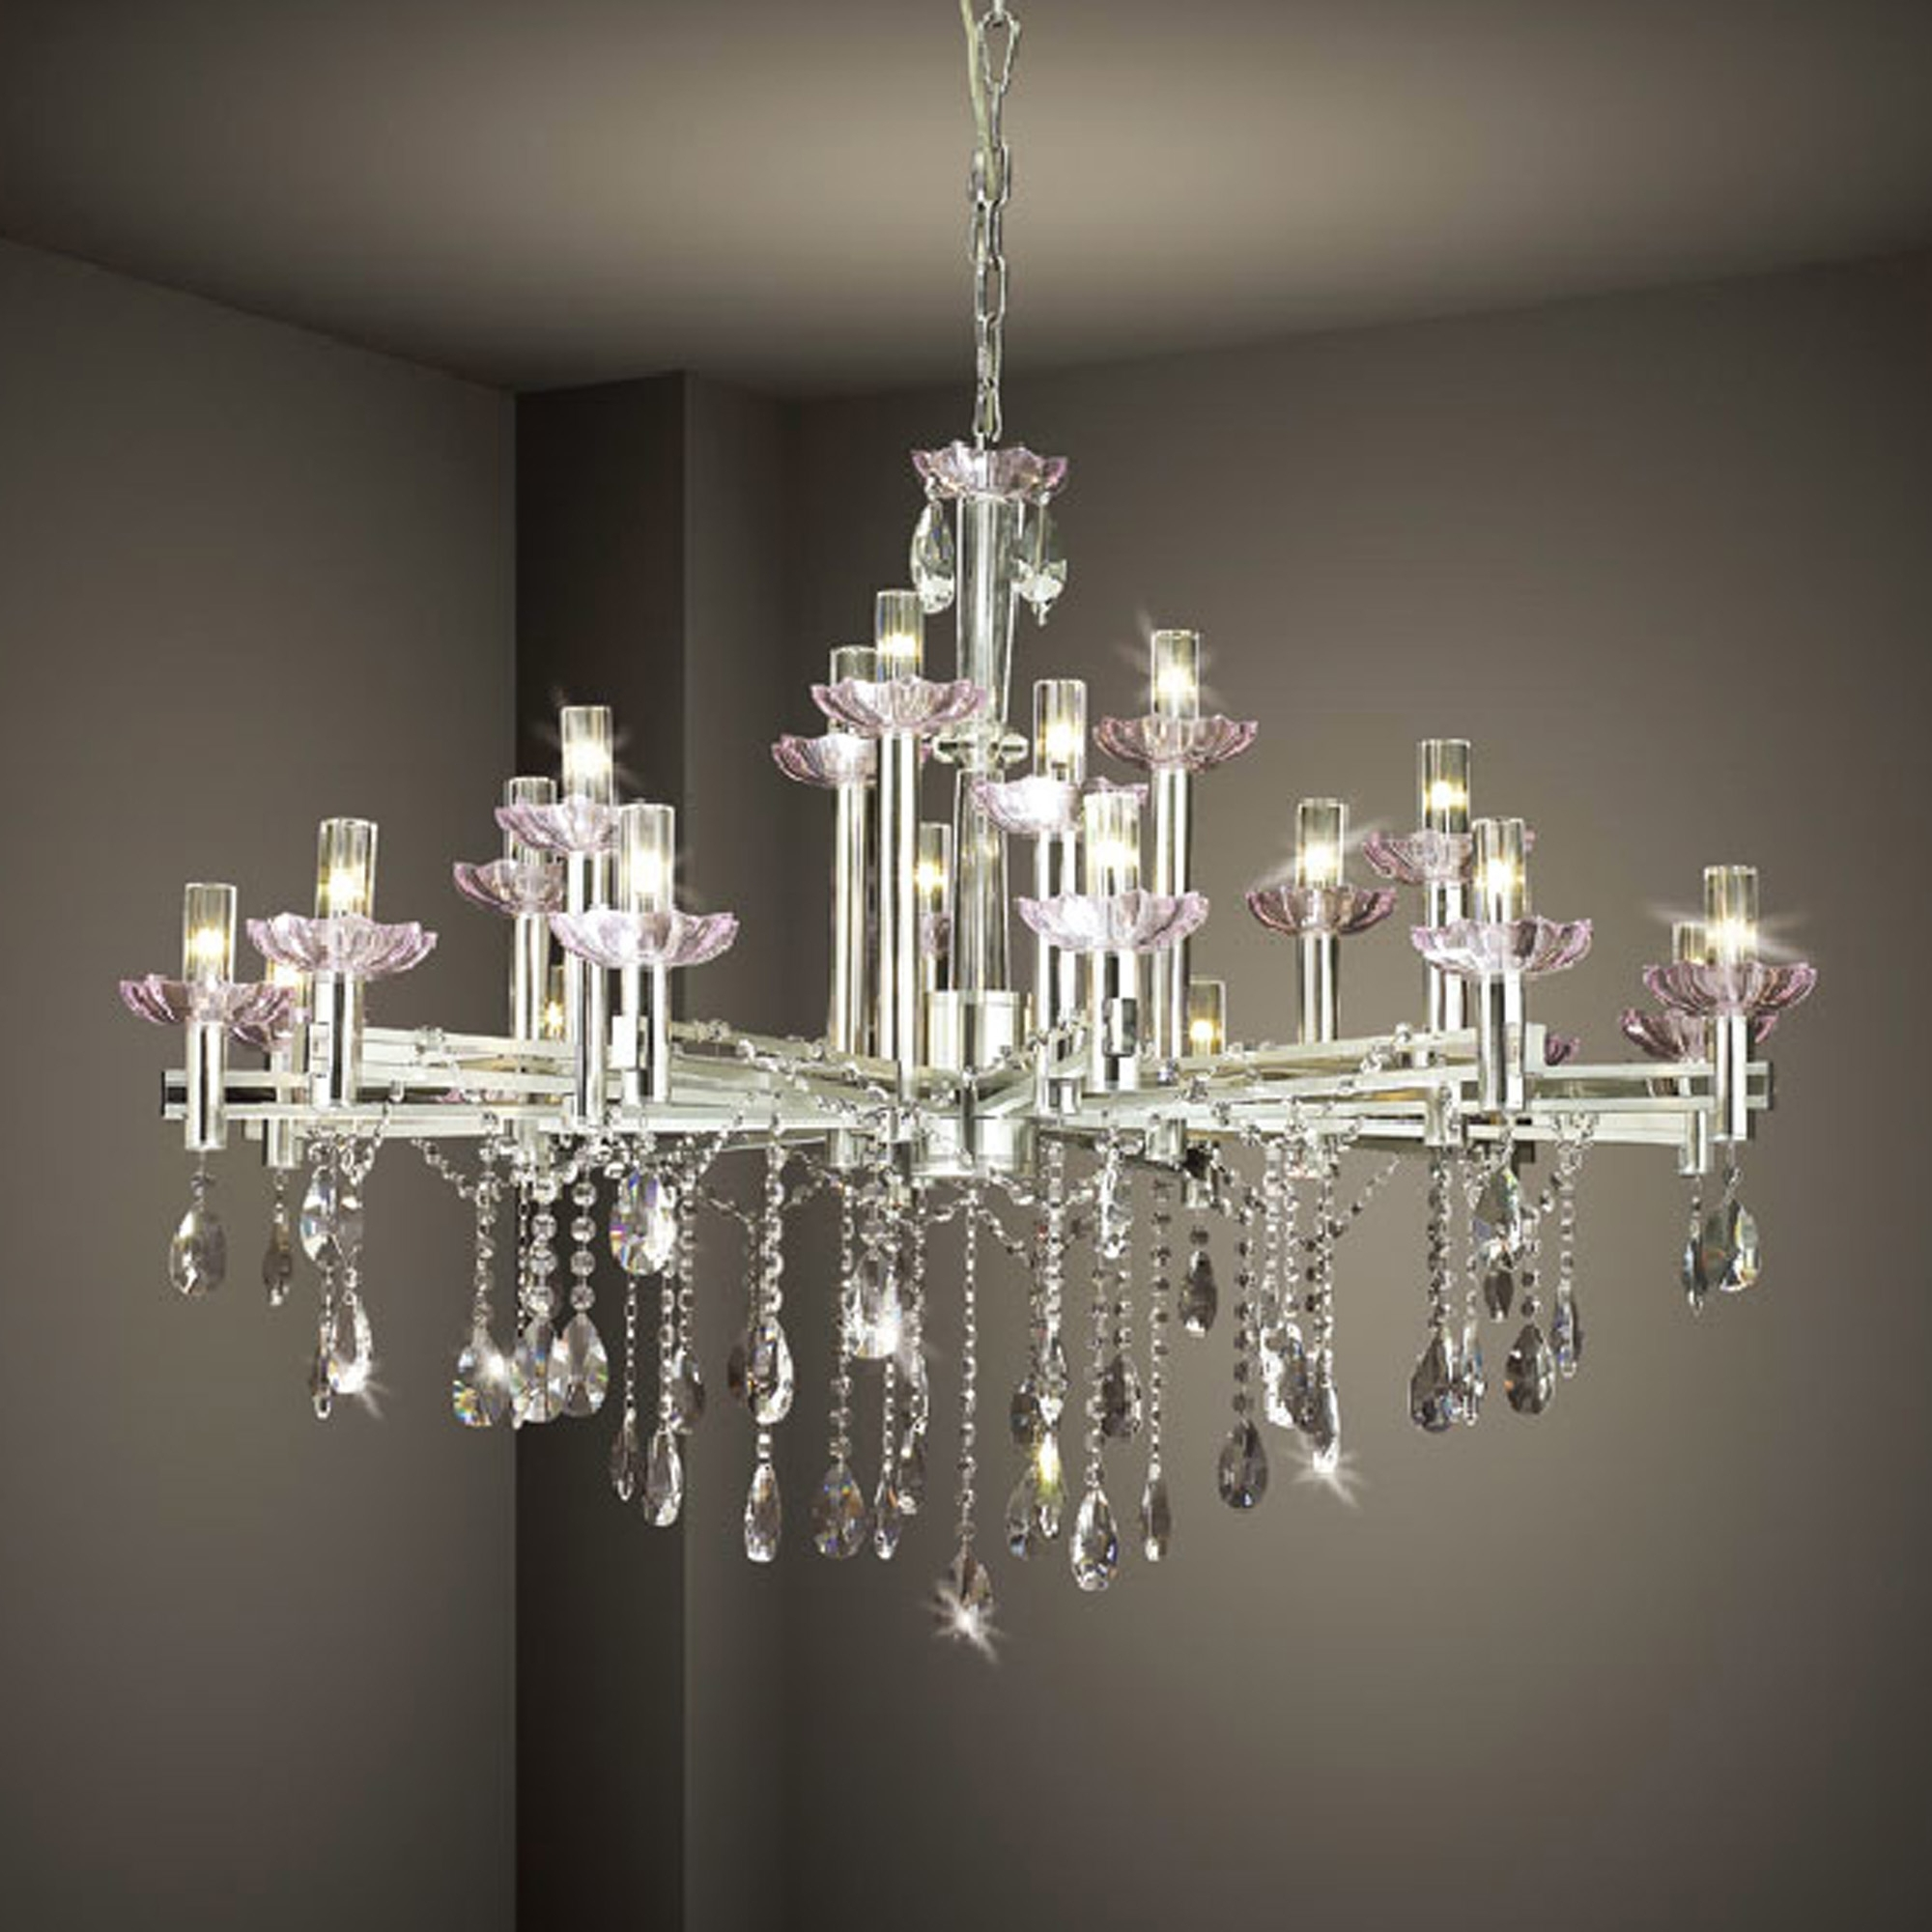 Widely Used White And Crystal Chandeliers In Hanging Modern Crystal Chandelier Lighting With Stainless Steel (View 6 of 15)